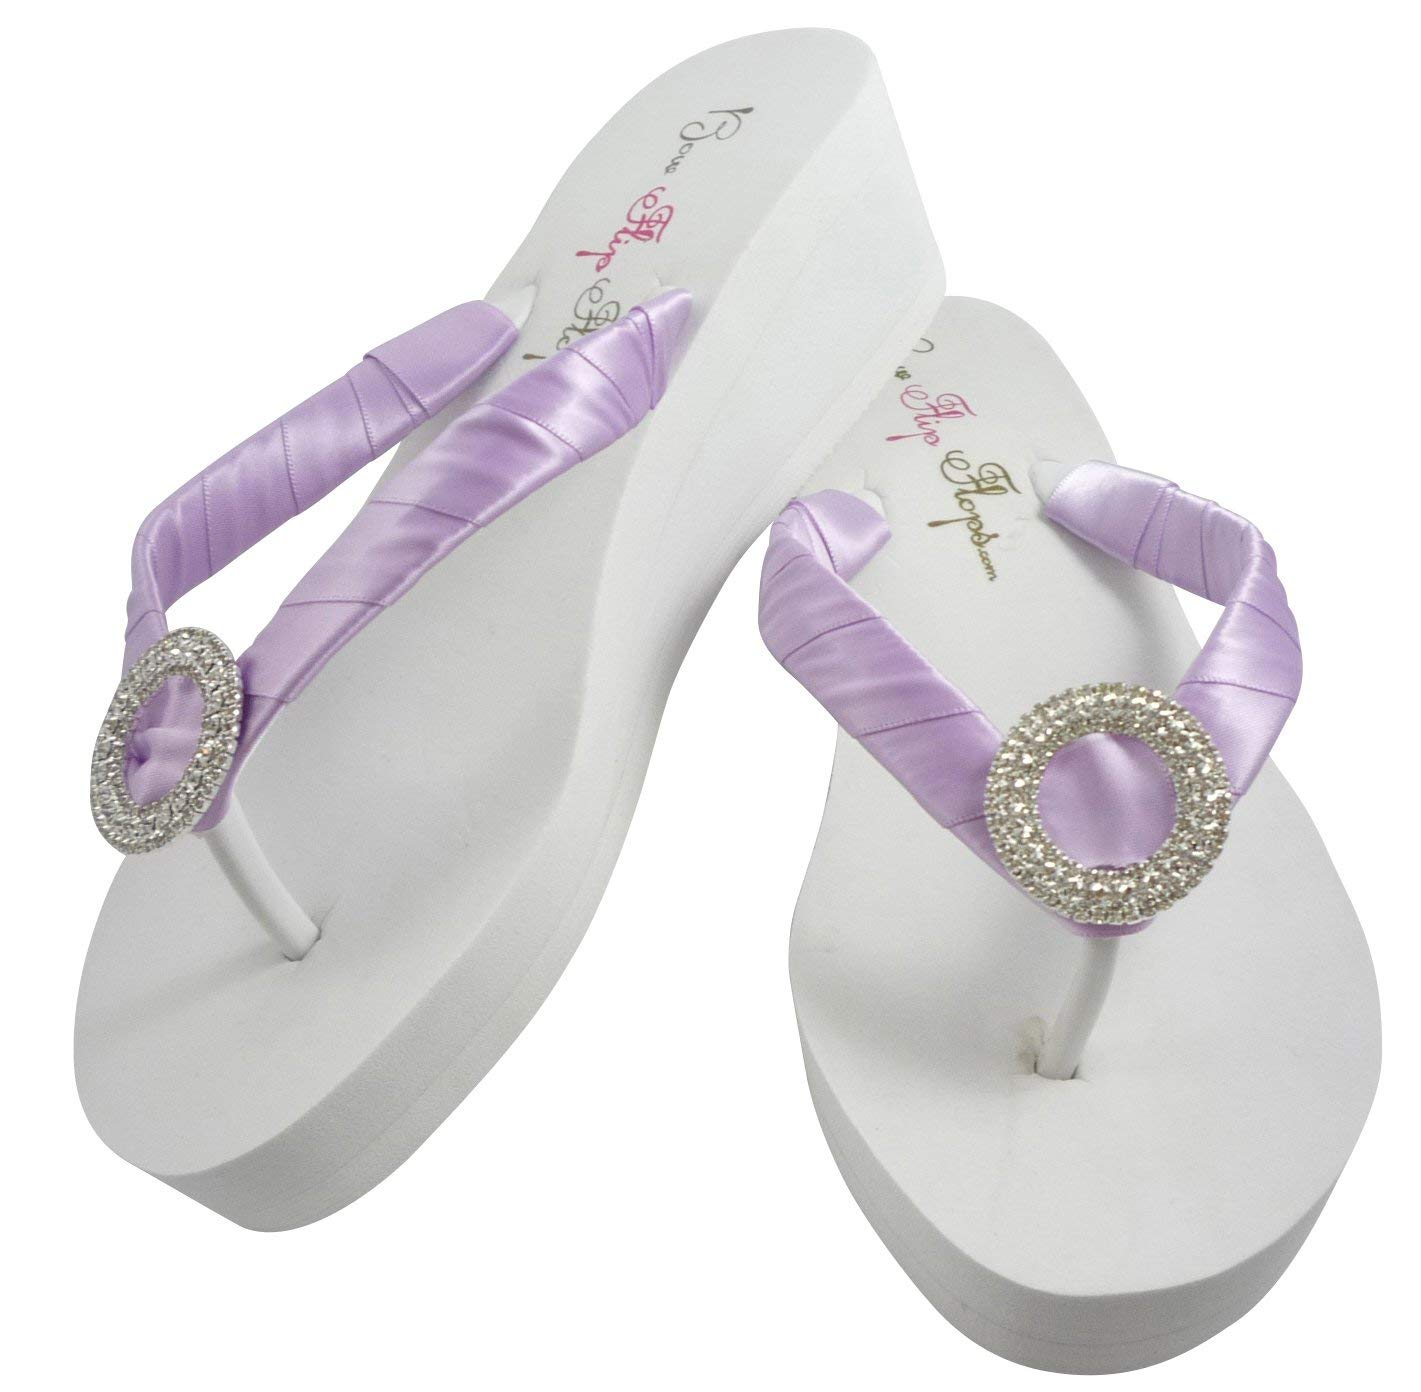 ab0f99052ff735 Get Quotations · Wedge Wedding Flip Flops with Luxe Rhinestone for Bride   Bridesmaid  Sandals- Ivory White